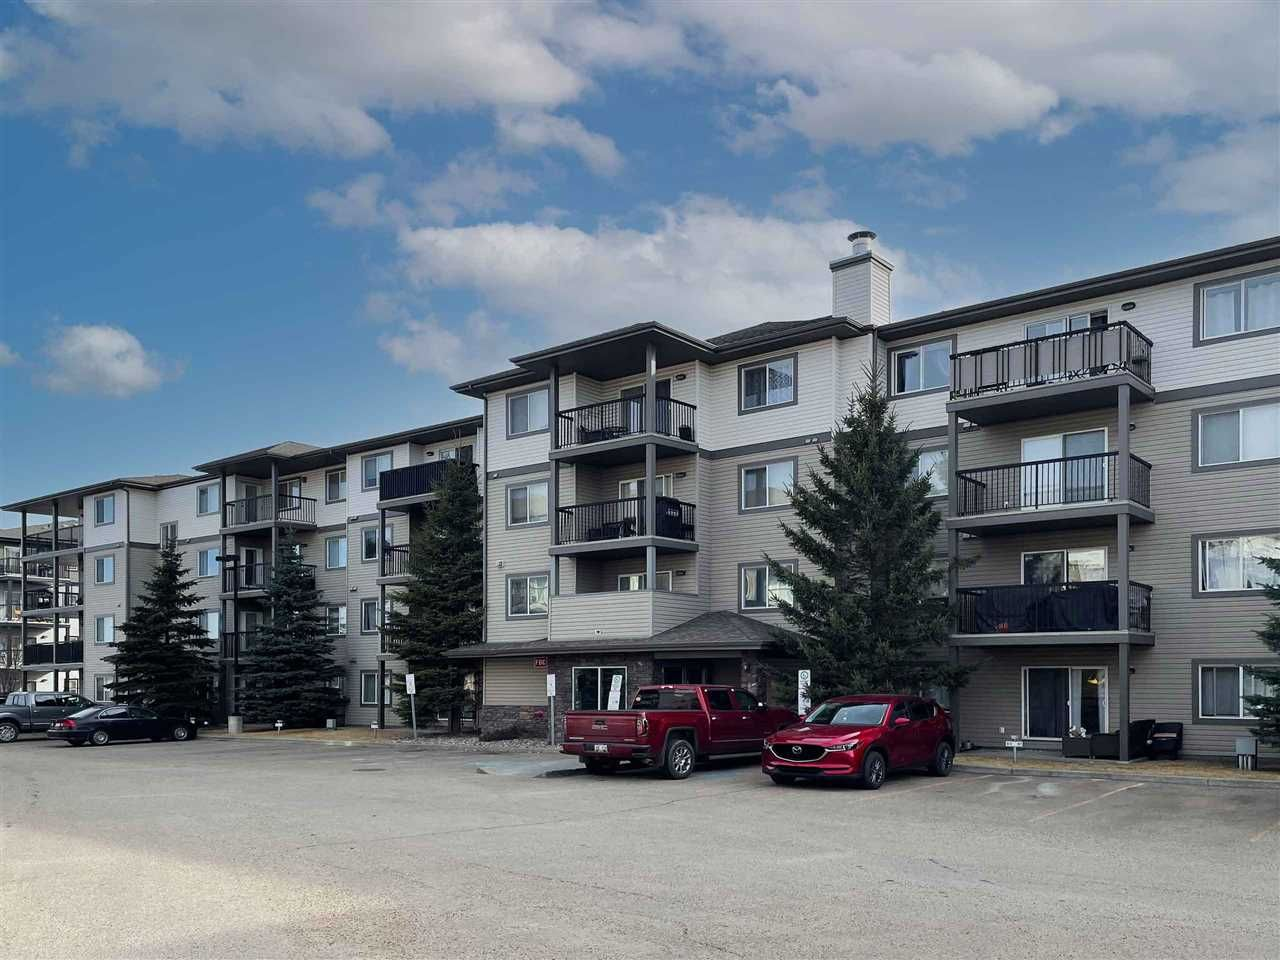 Main Photo: 403 1188 HYNDMAN Road in Edmonton: Zone 35 Condo for sale : MLS®# E4228866